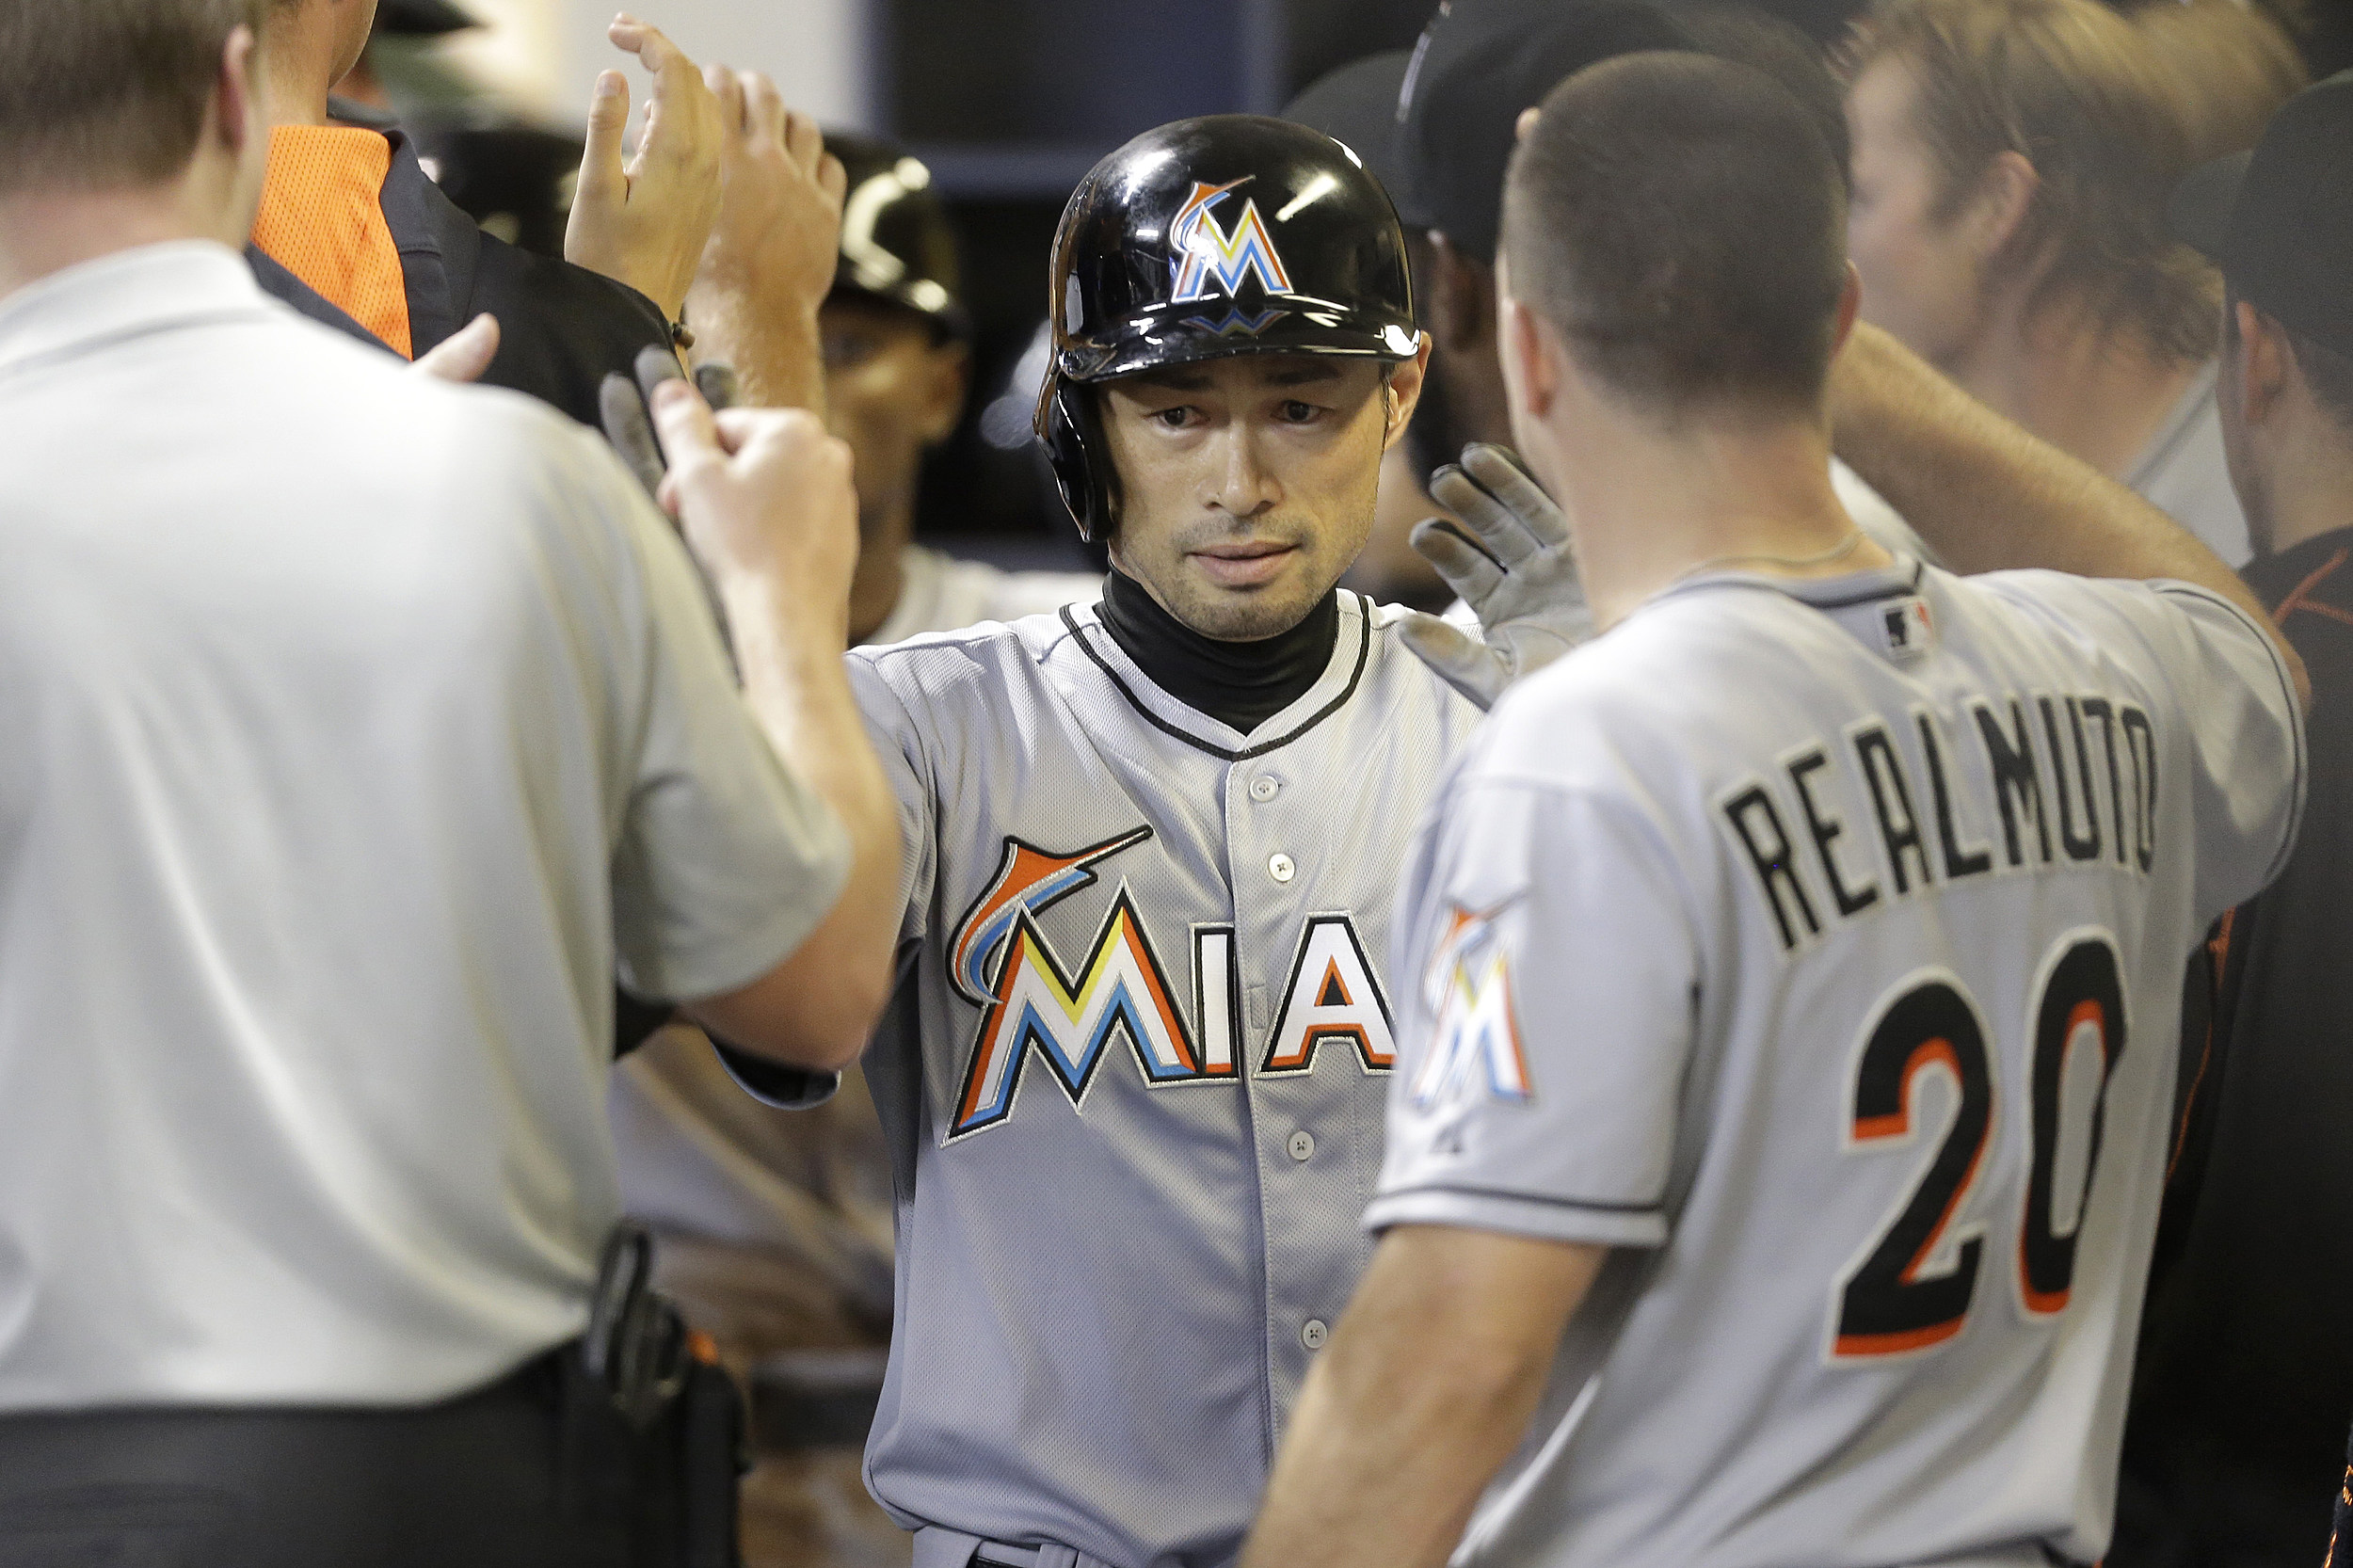 Marlins netted by Mariners